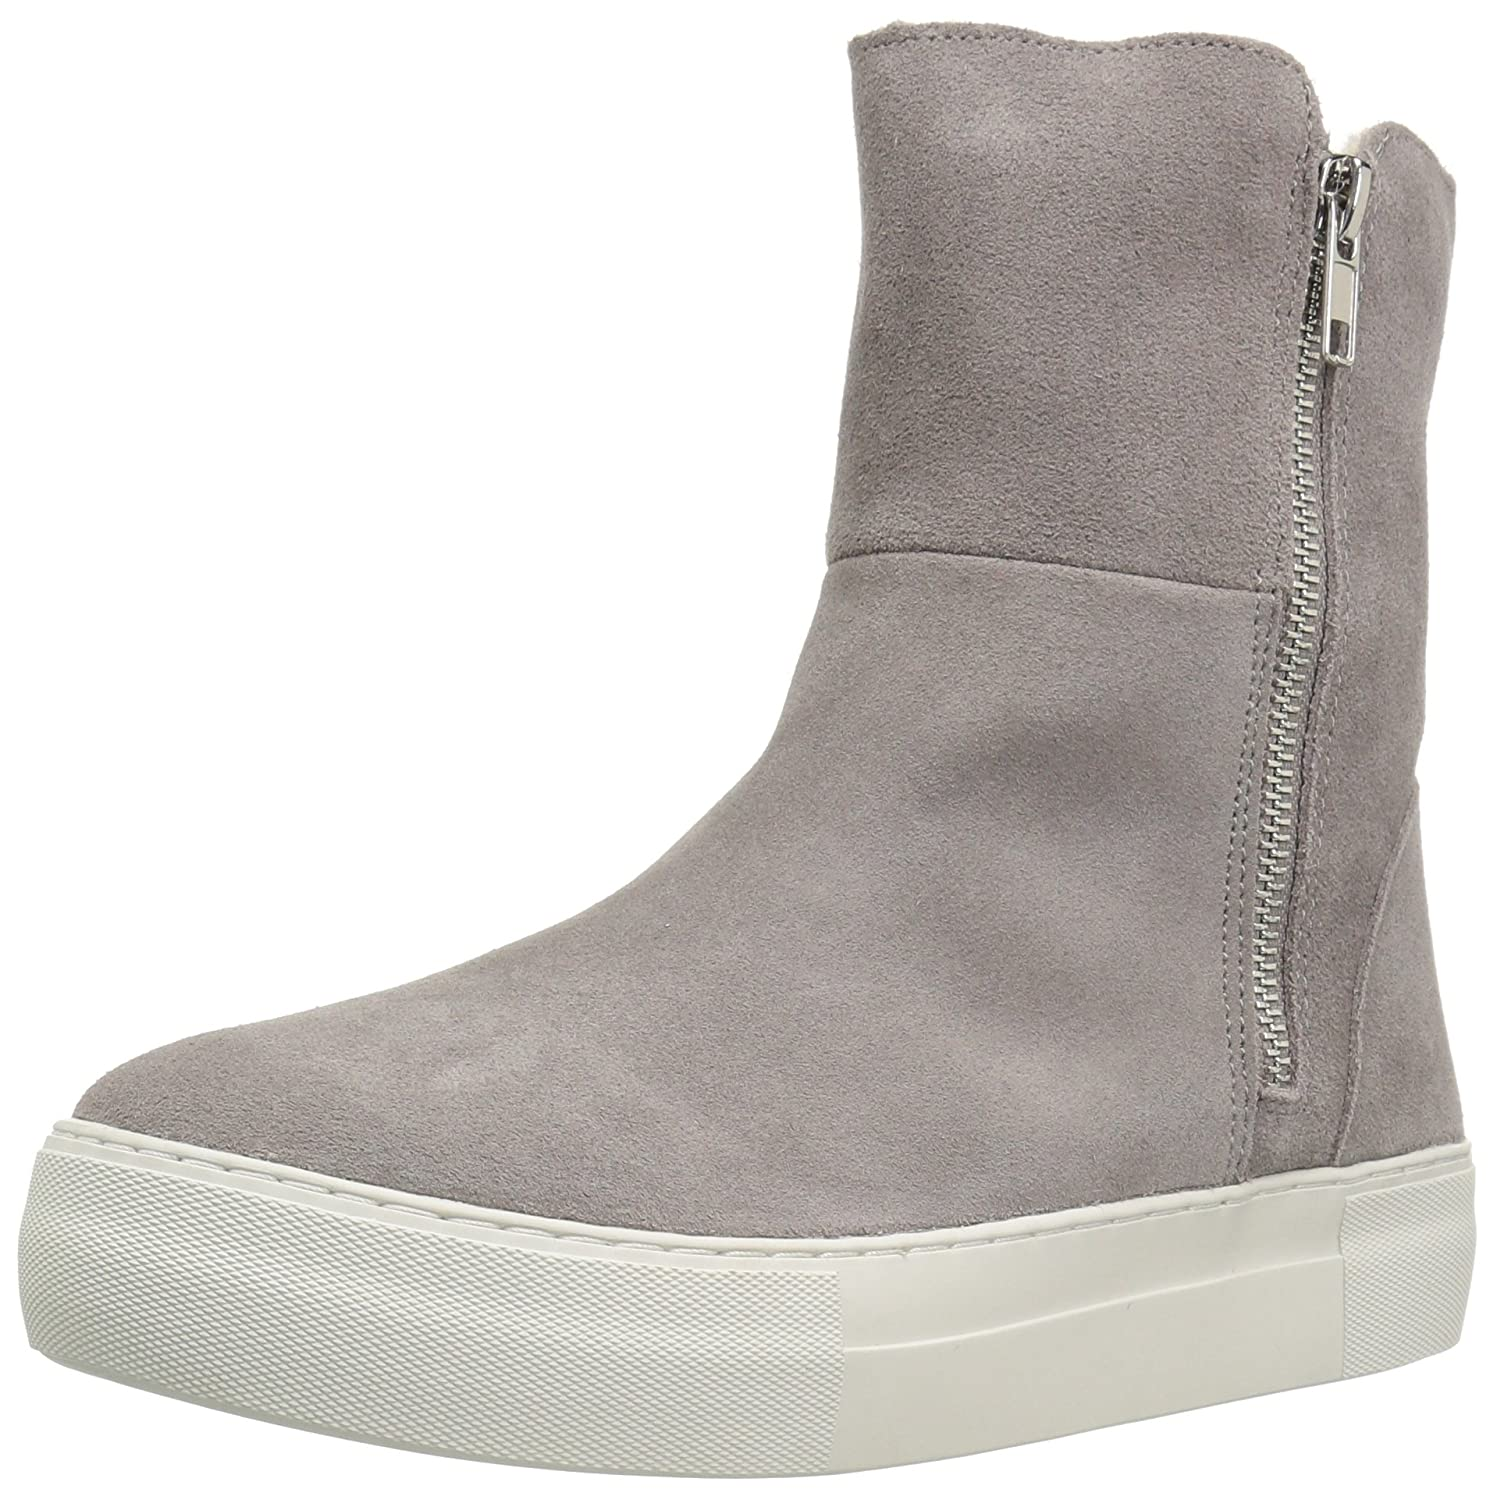 Steve Madden Women's Boost Snow Boot B01N44LACK 10 B(M) US|Grey Suede